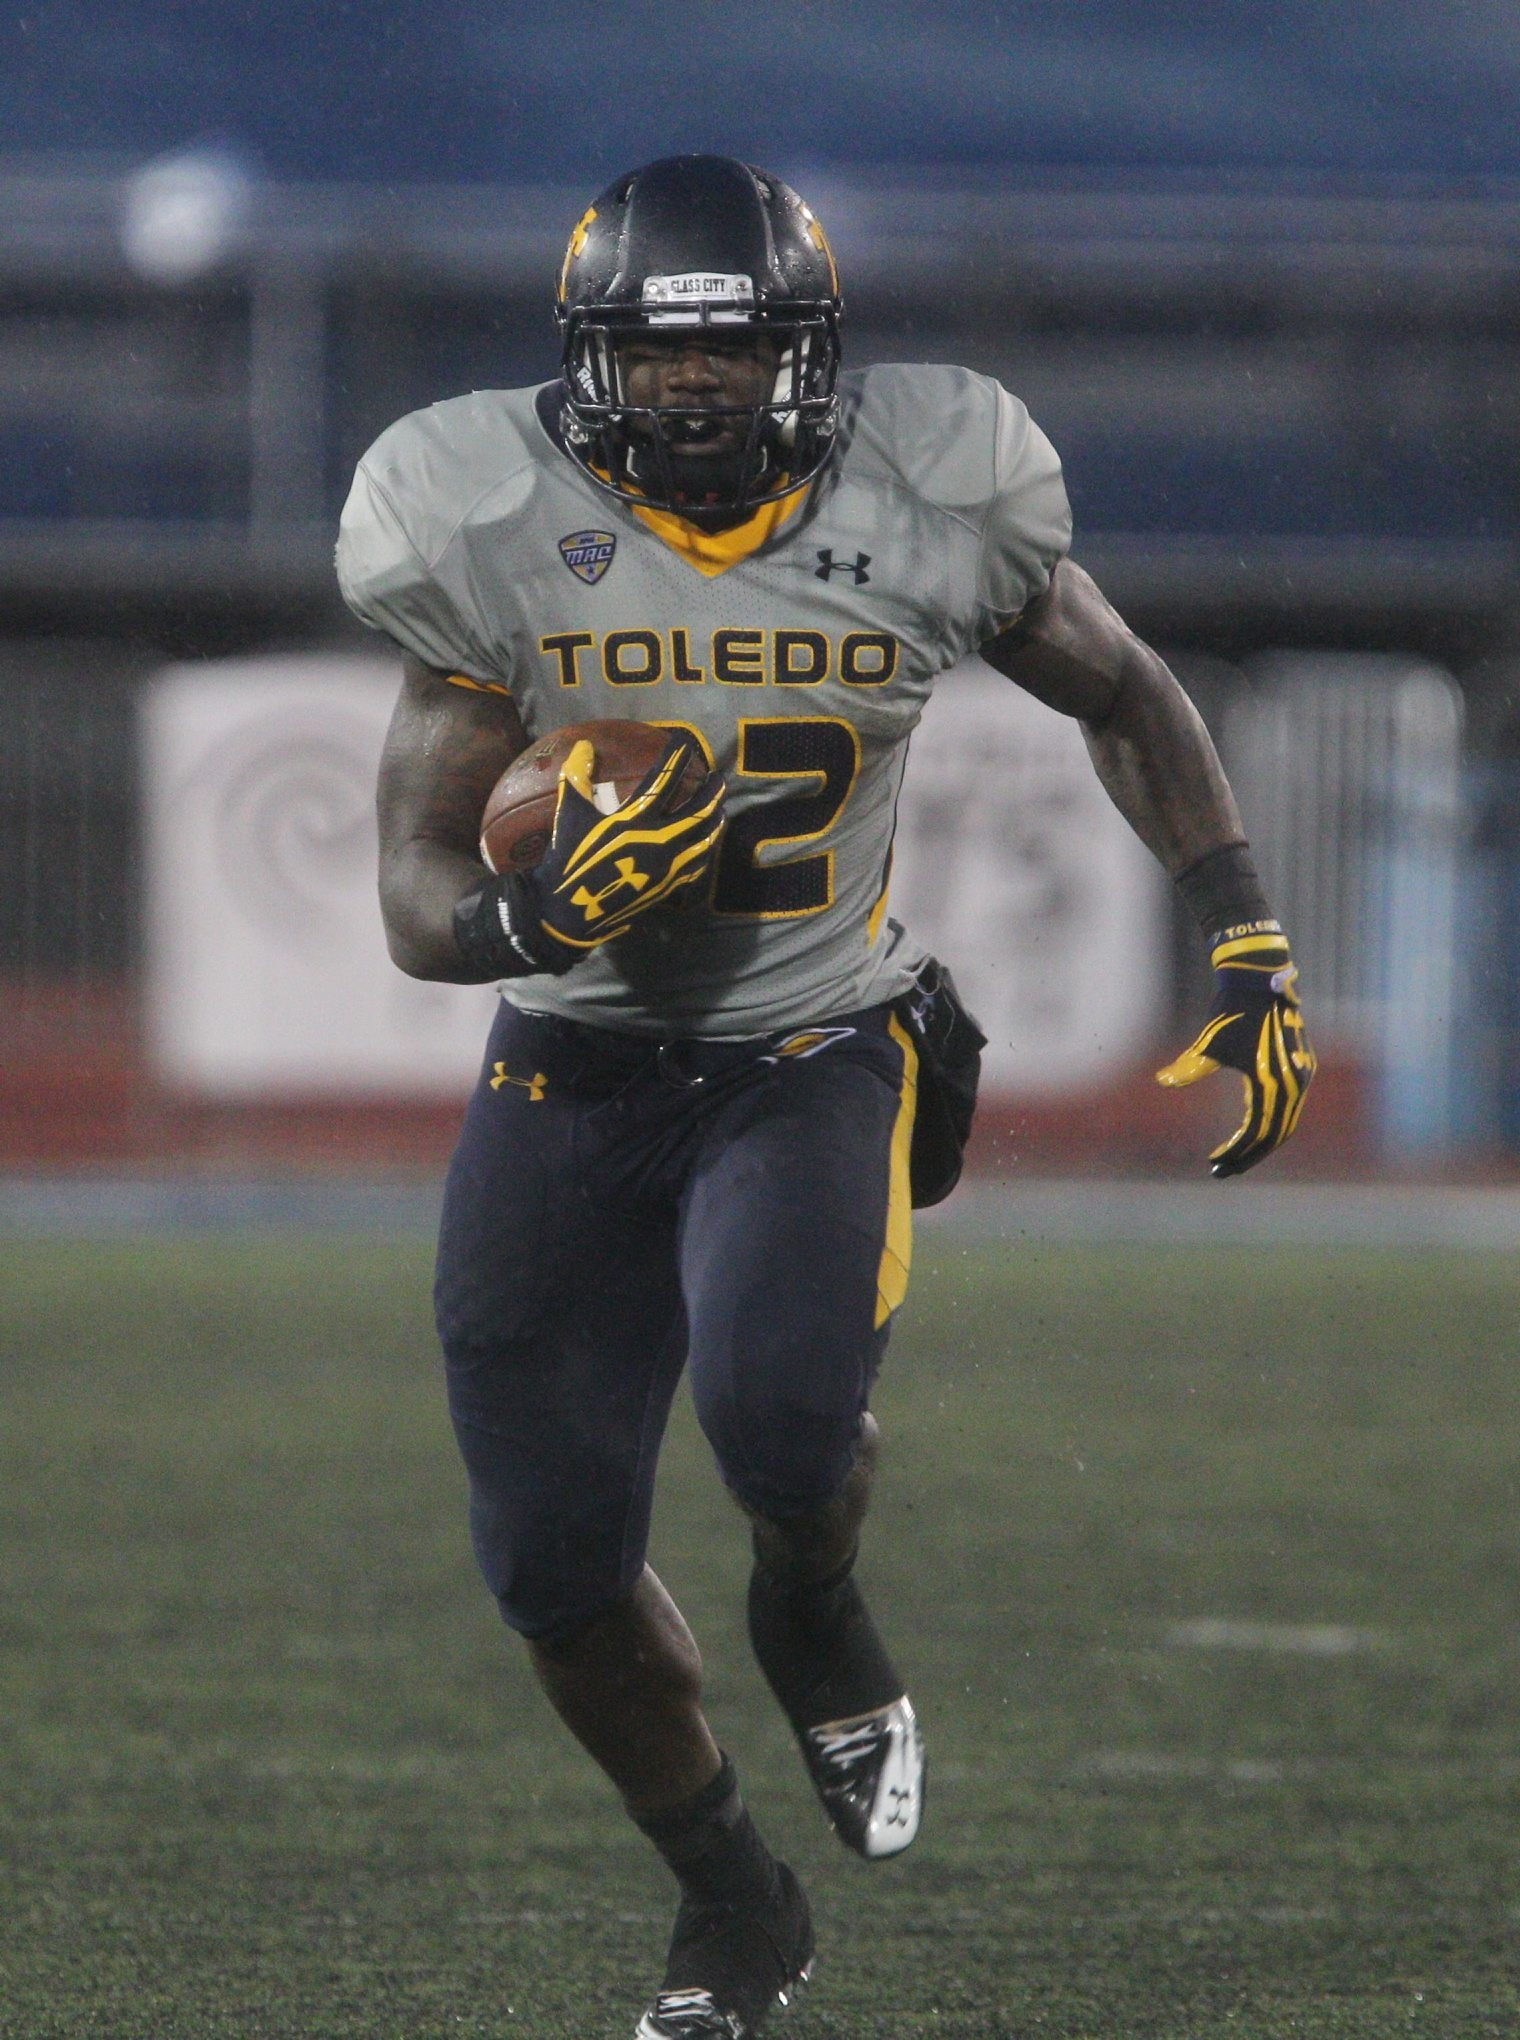 Lockport native David Fluellen rushed for 111 yards and had 100 yards receiving for Toledo last weekend.